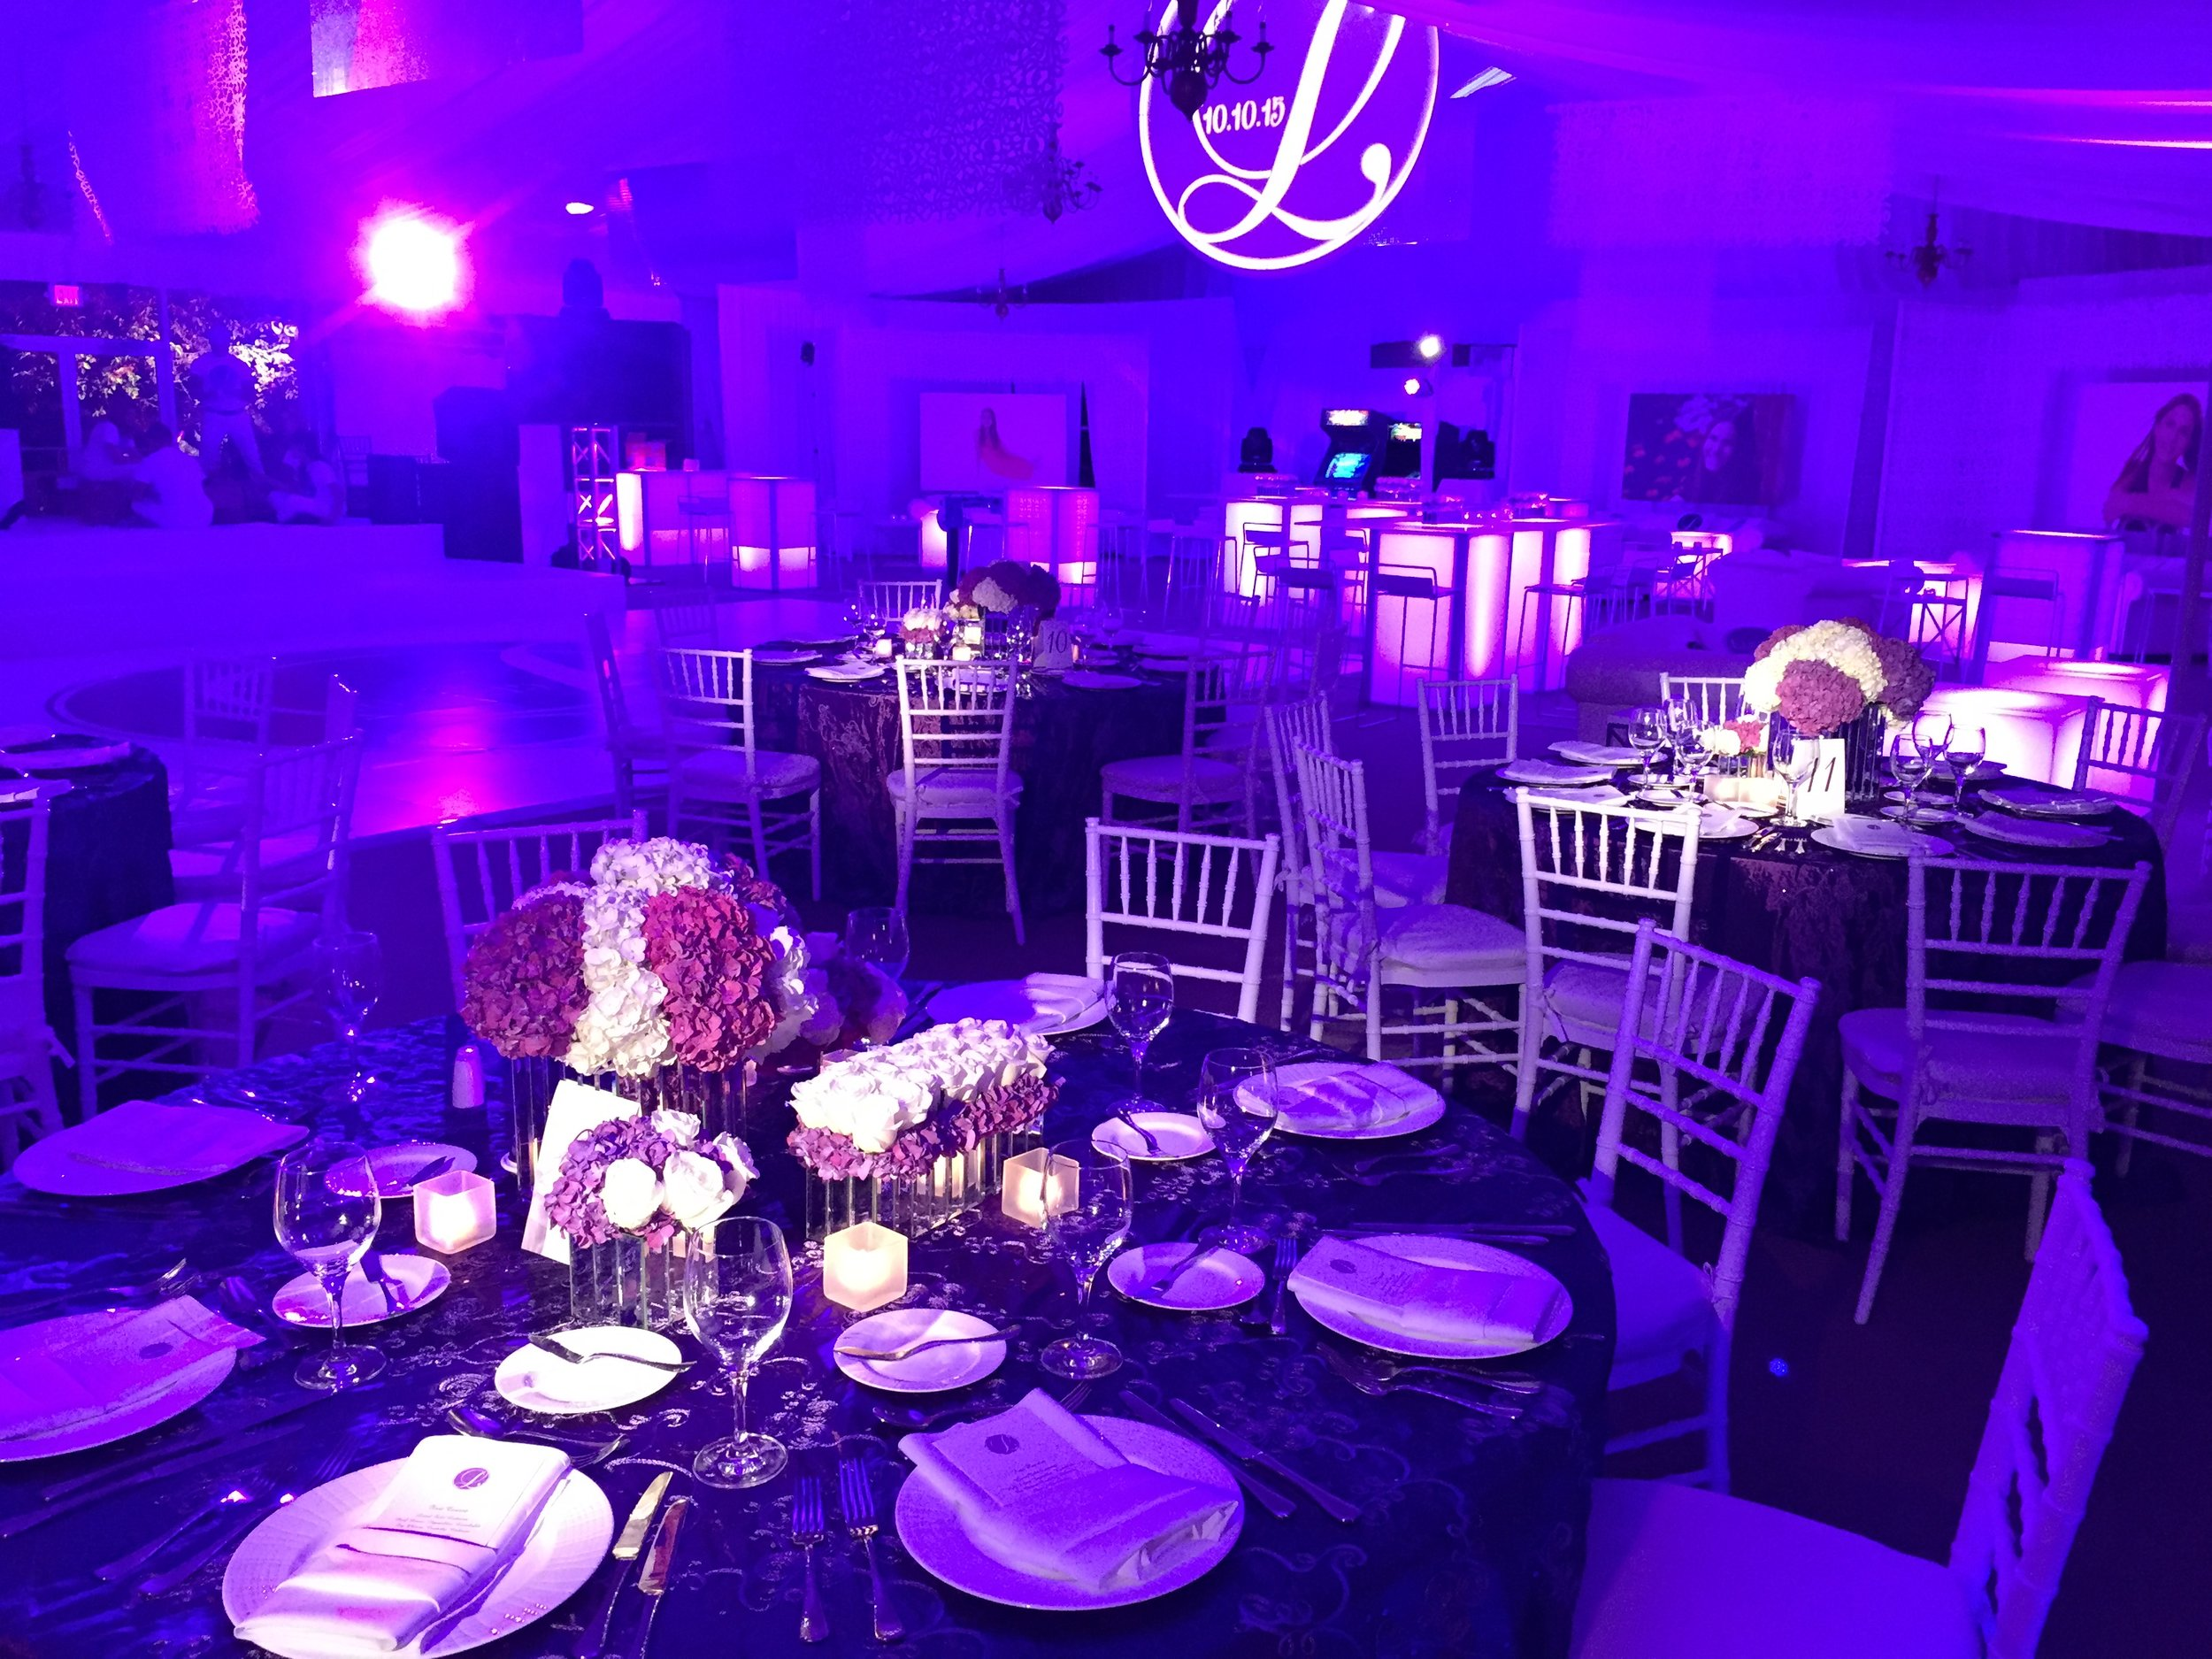 NJ+NY+PA+event+decor+lighting+rentals+centerpieces+rental+bar+bat+mitzvah.jpg